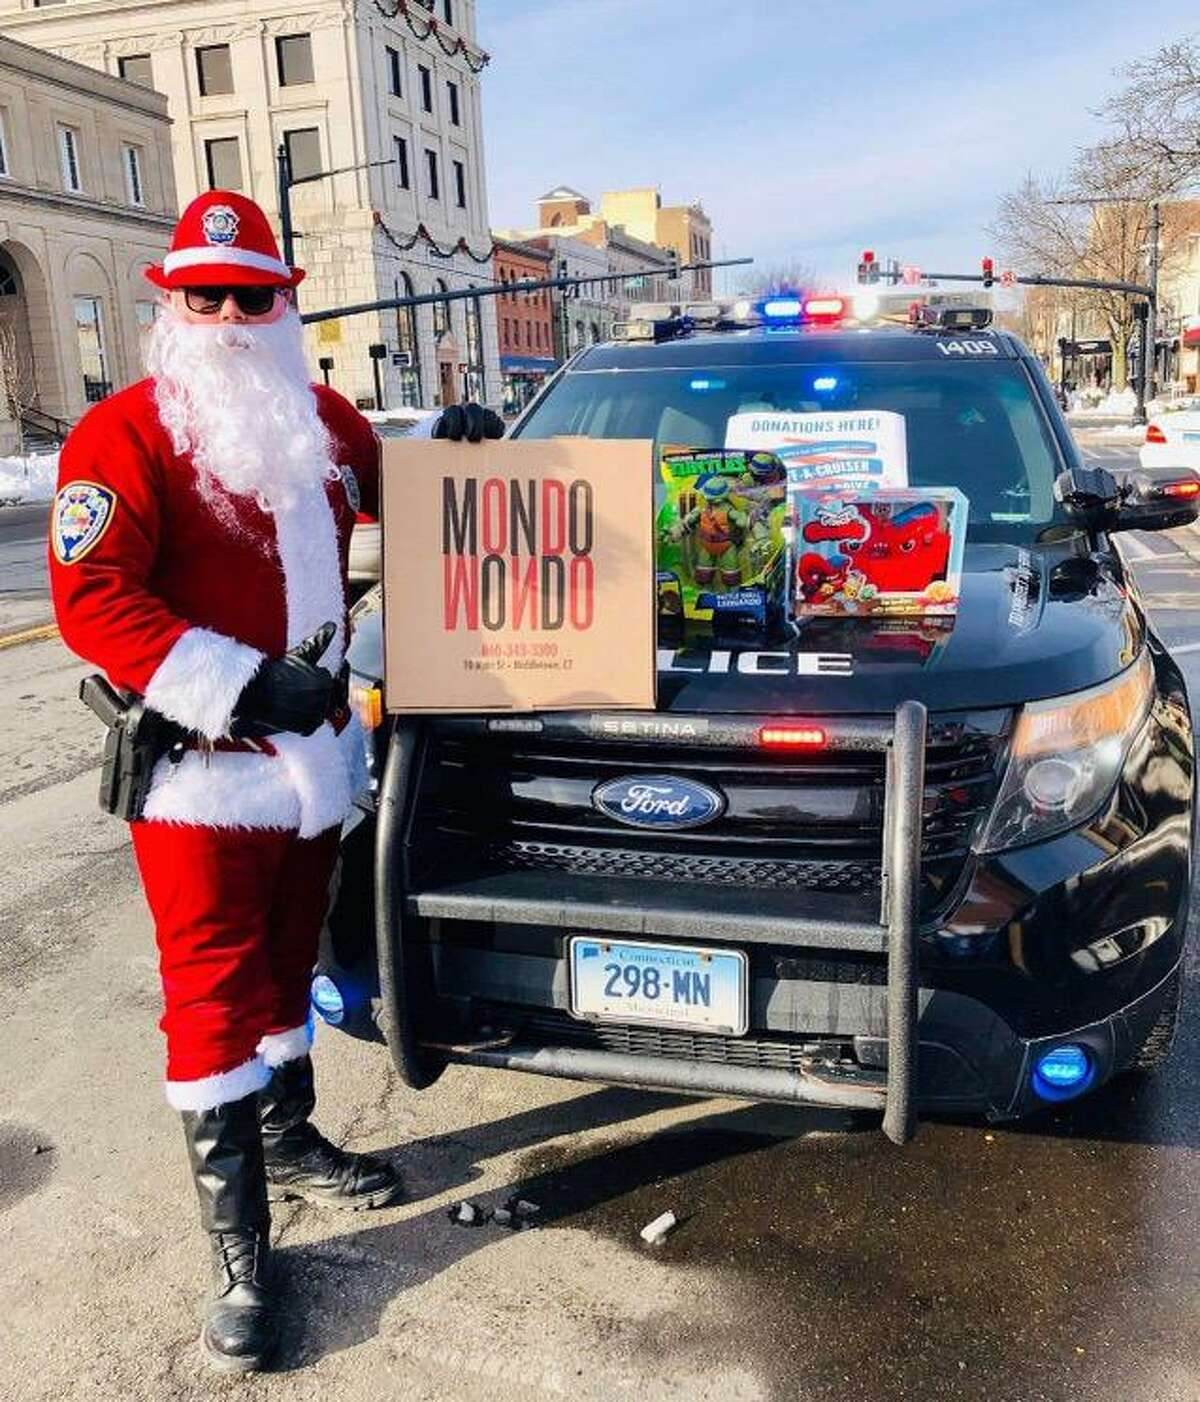 Dressed as Santa, Middletown Police Community Relations Officer Jay Bodell shows off some of the holiday toy donations from the community, and Mondo Pizza, which gave a $60 gift card to a city family in need.